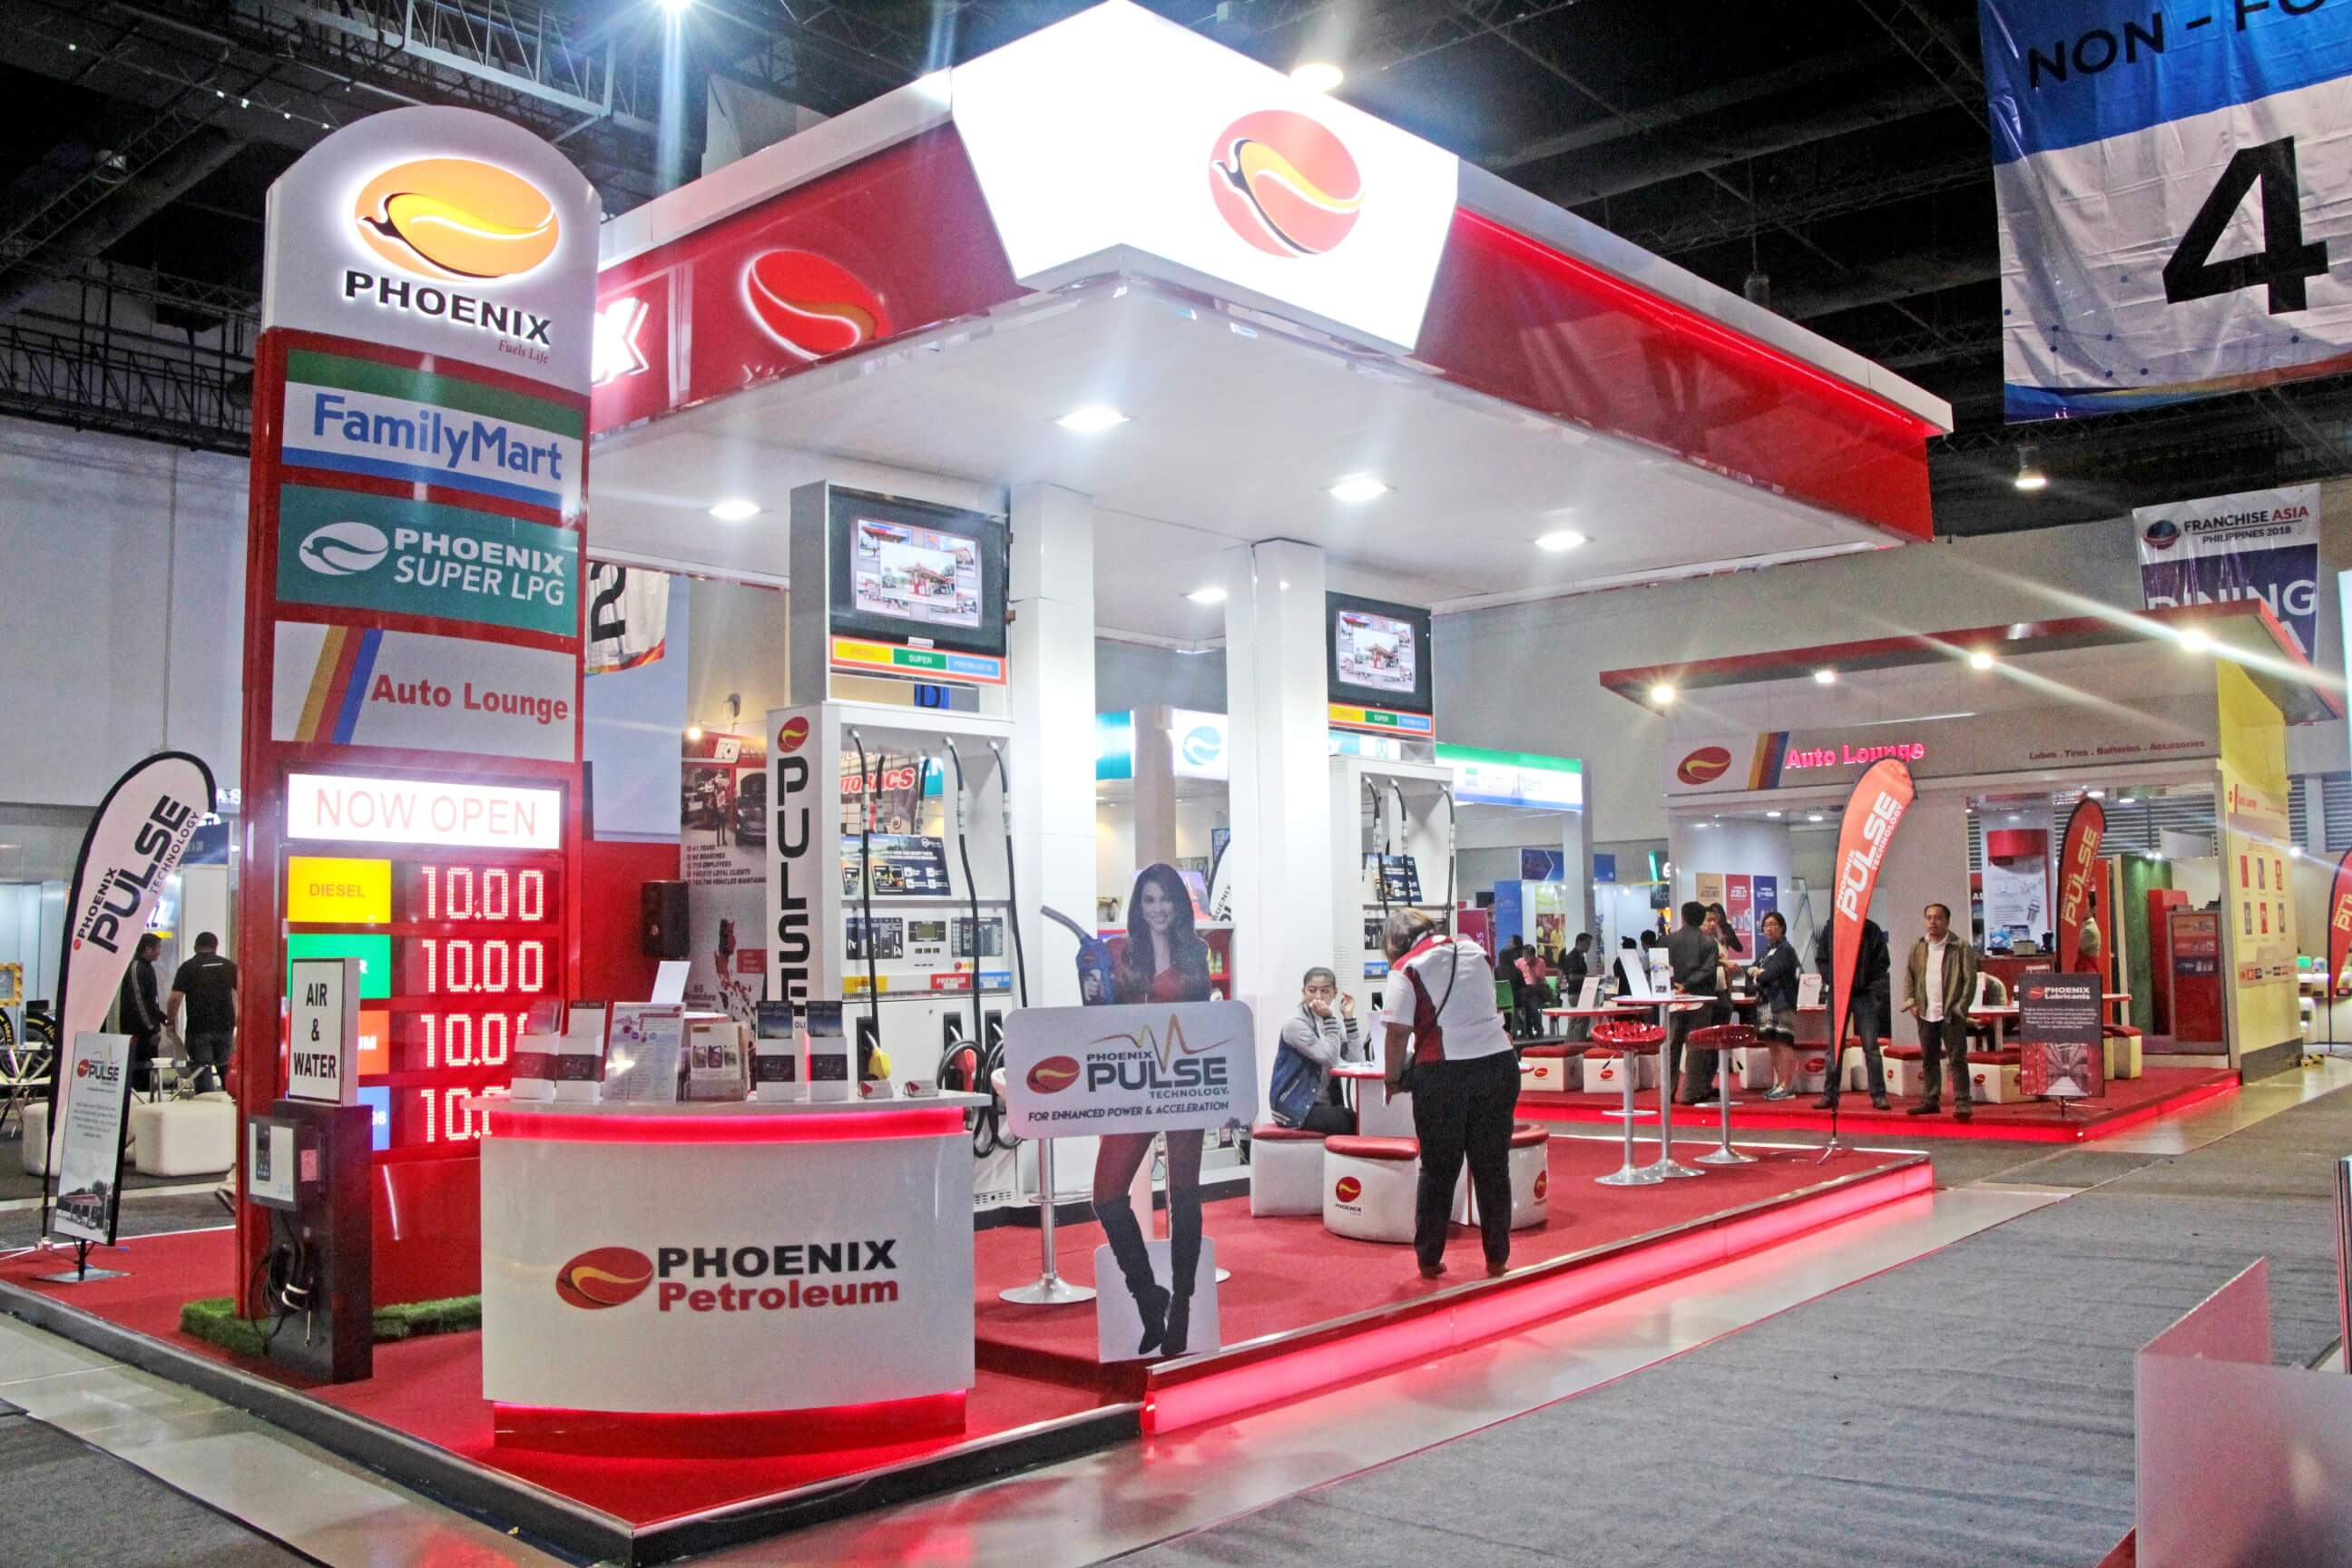 Phoenix Petroleum bags 6th Best Booth Design award at Franchise Asia 2018